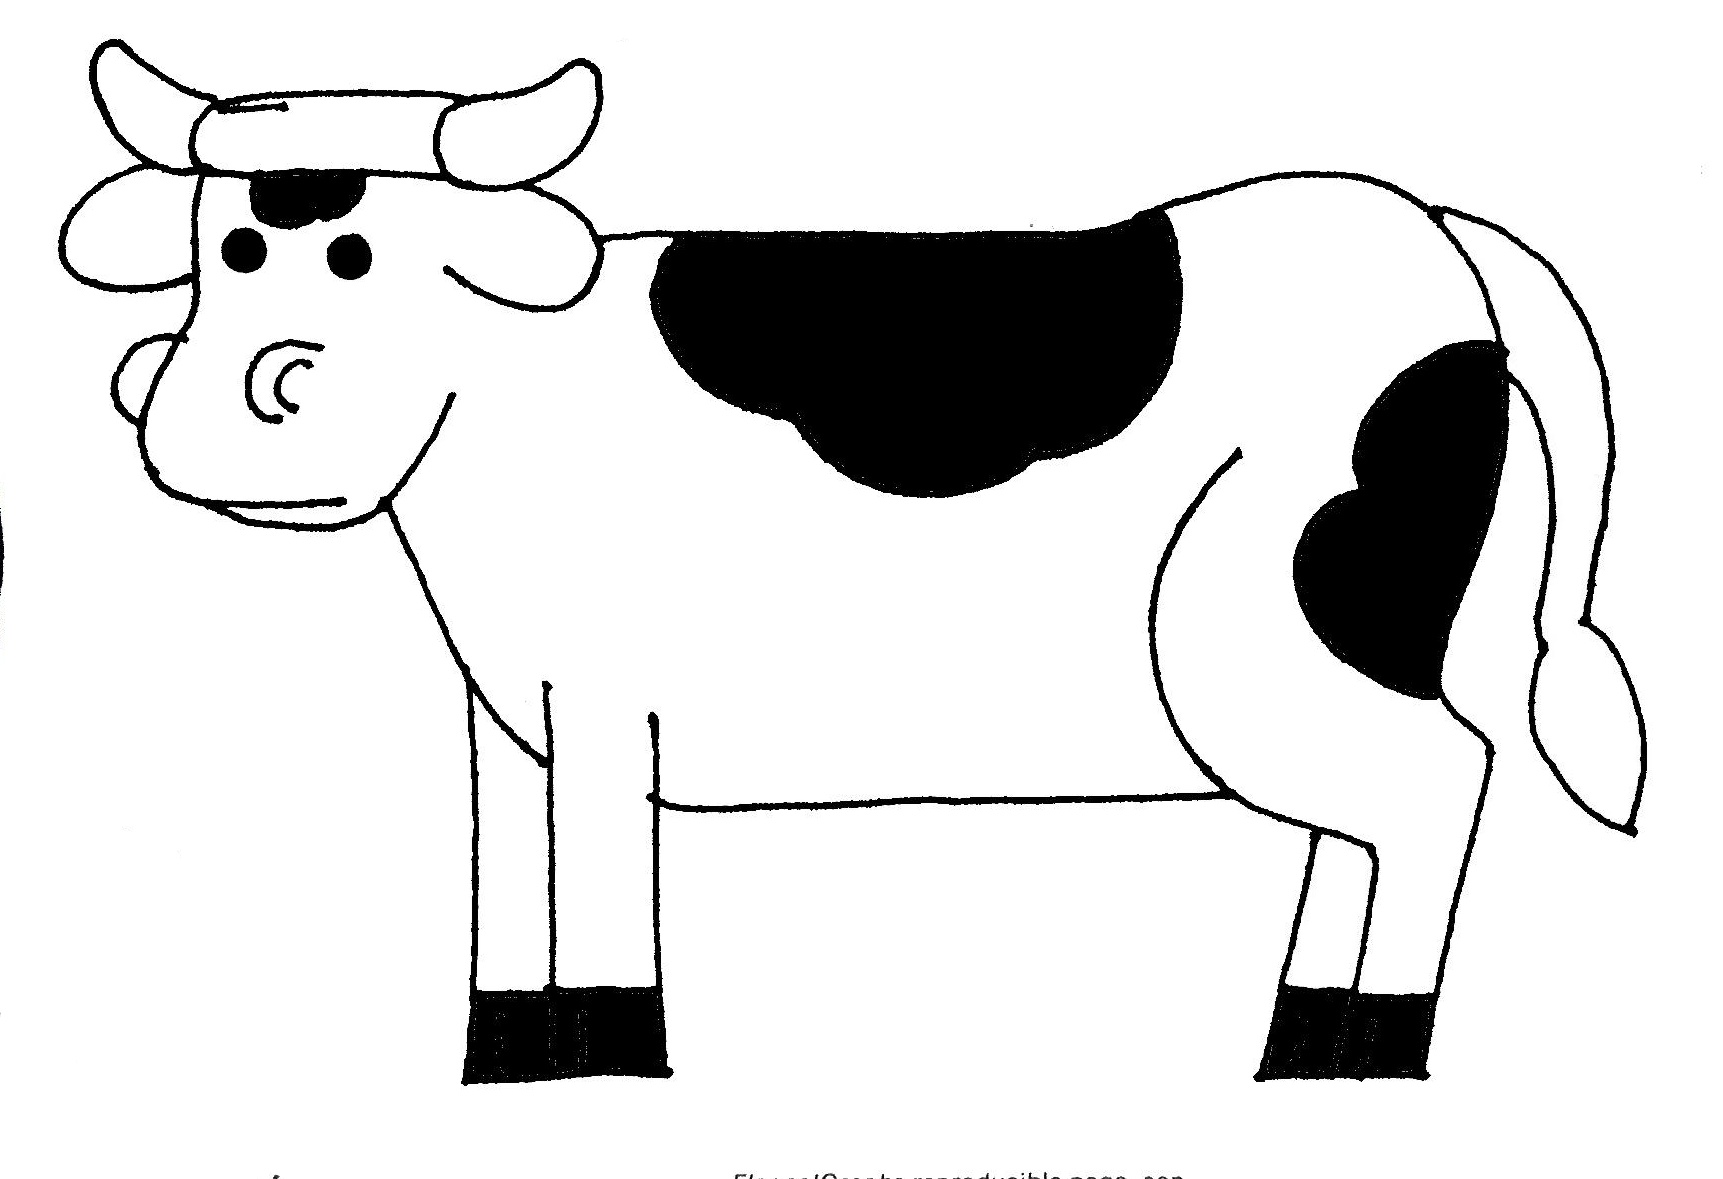 Free Outline Of Cow Download Free Clip Art Free Clip Art